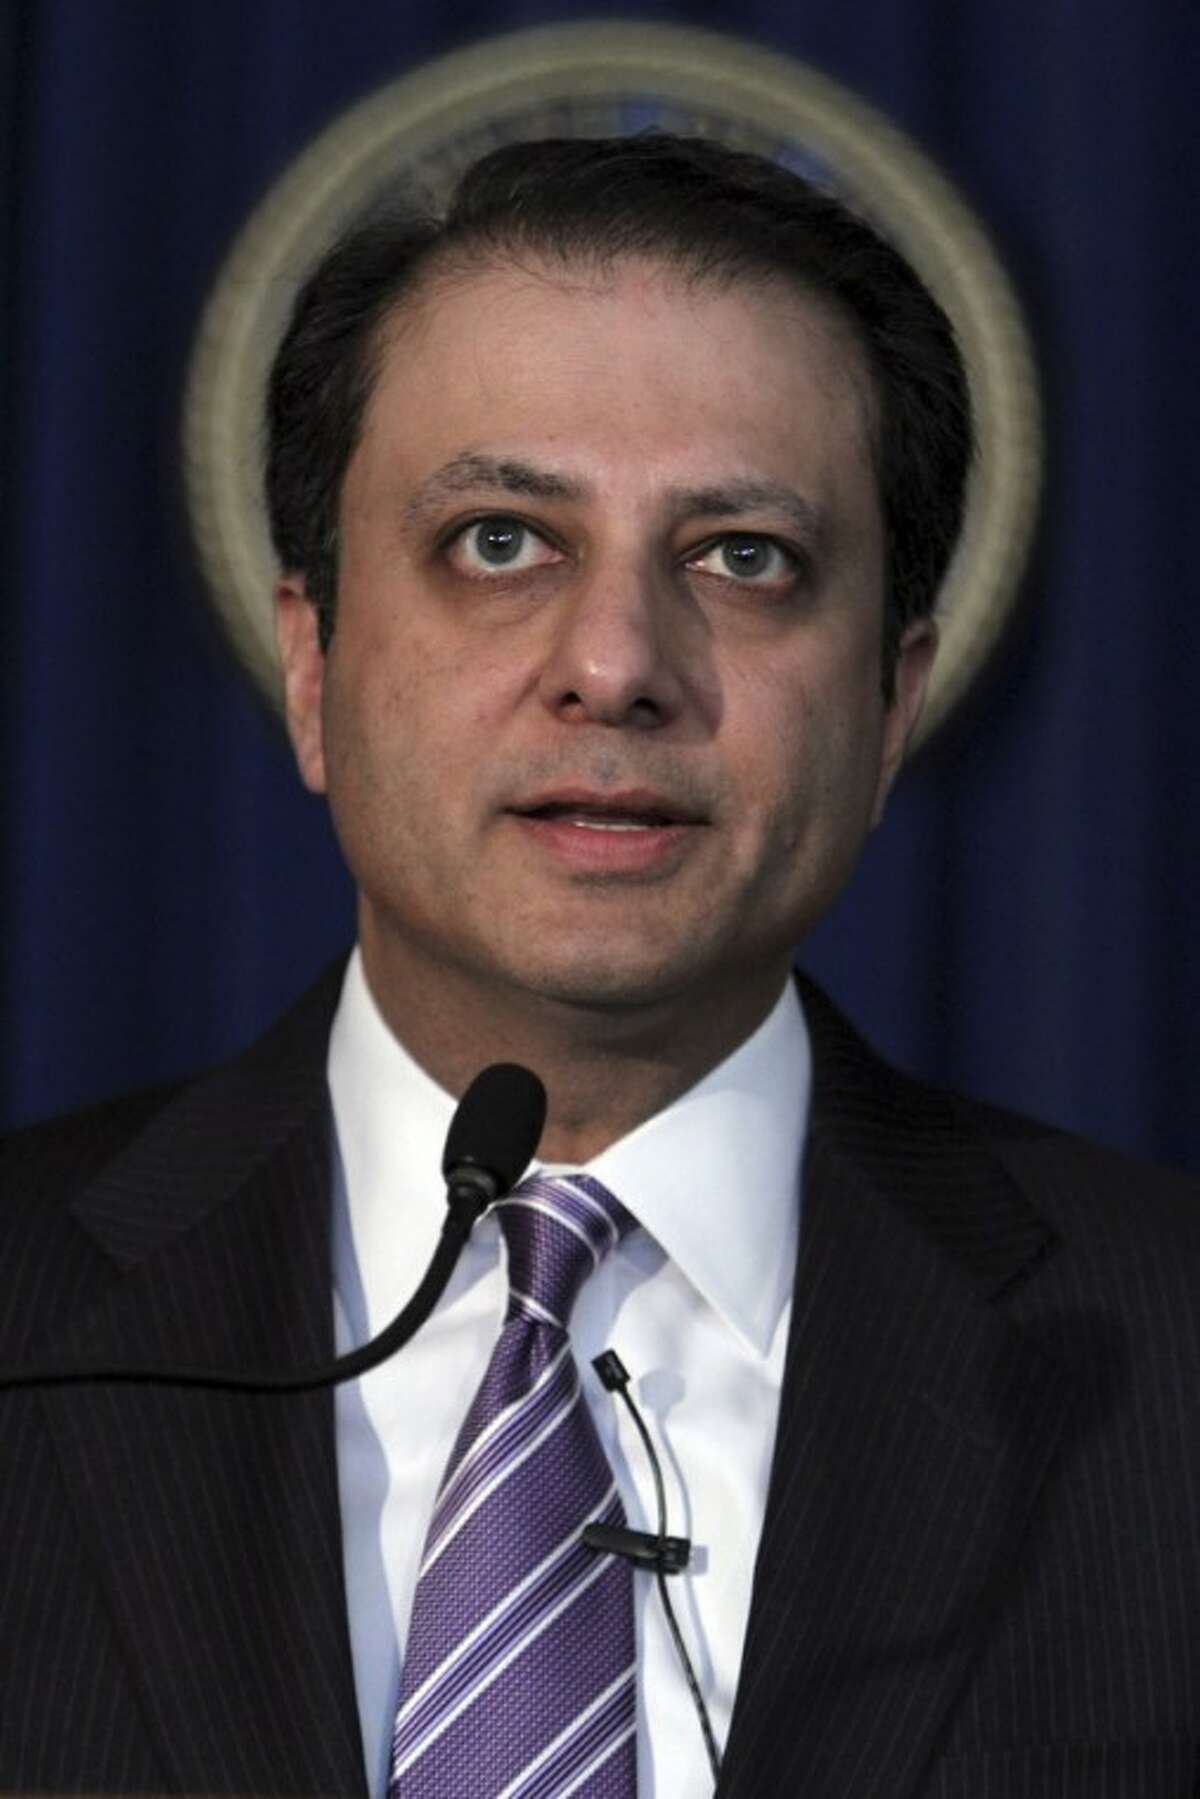 U.S. Attorney Preet Bharara speaks during a news conference, Wednesday, Jan. 18, 2012 in New York. A hedge fund co-founder, four financial analysts and a Dell Inc. employee teamed up in a record-setting insider trading scheme that netted more than $61.8 million in illegal profits based on trades of a single stock, authorities said Wednesday. They described a cozy network of friends in finance who made the most of their connections with corrupt employees of technology companies. (AP Photo/Mary Altaffer)